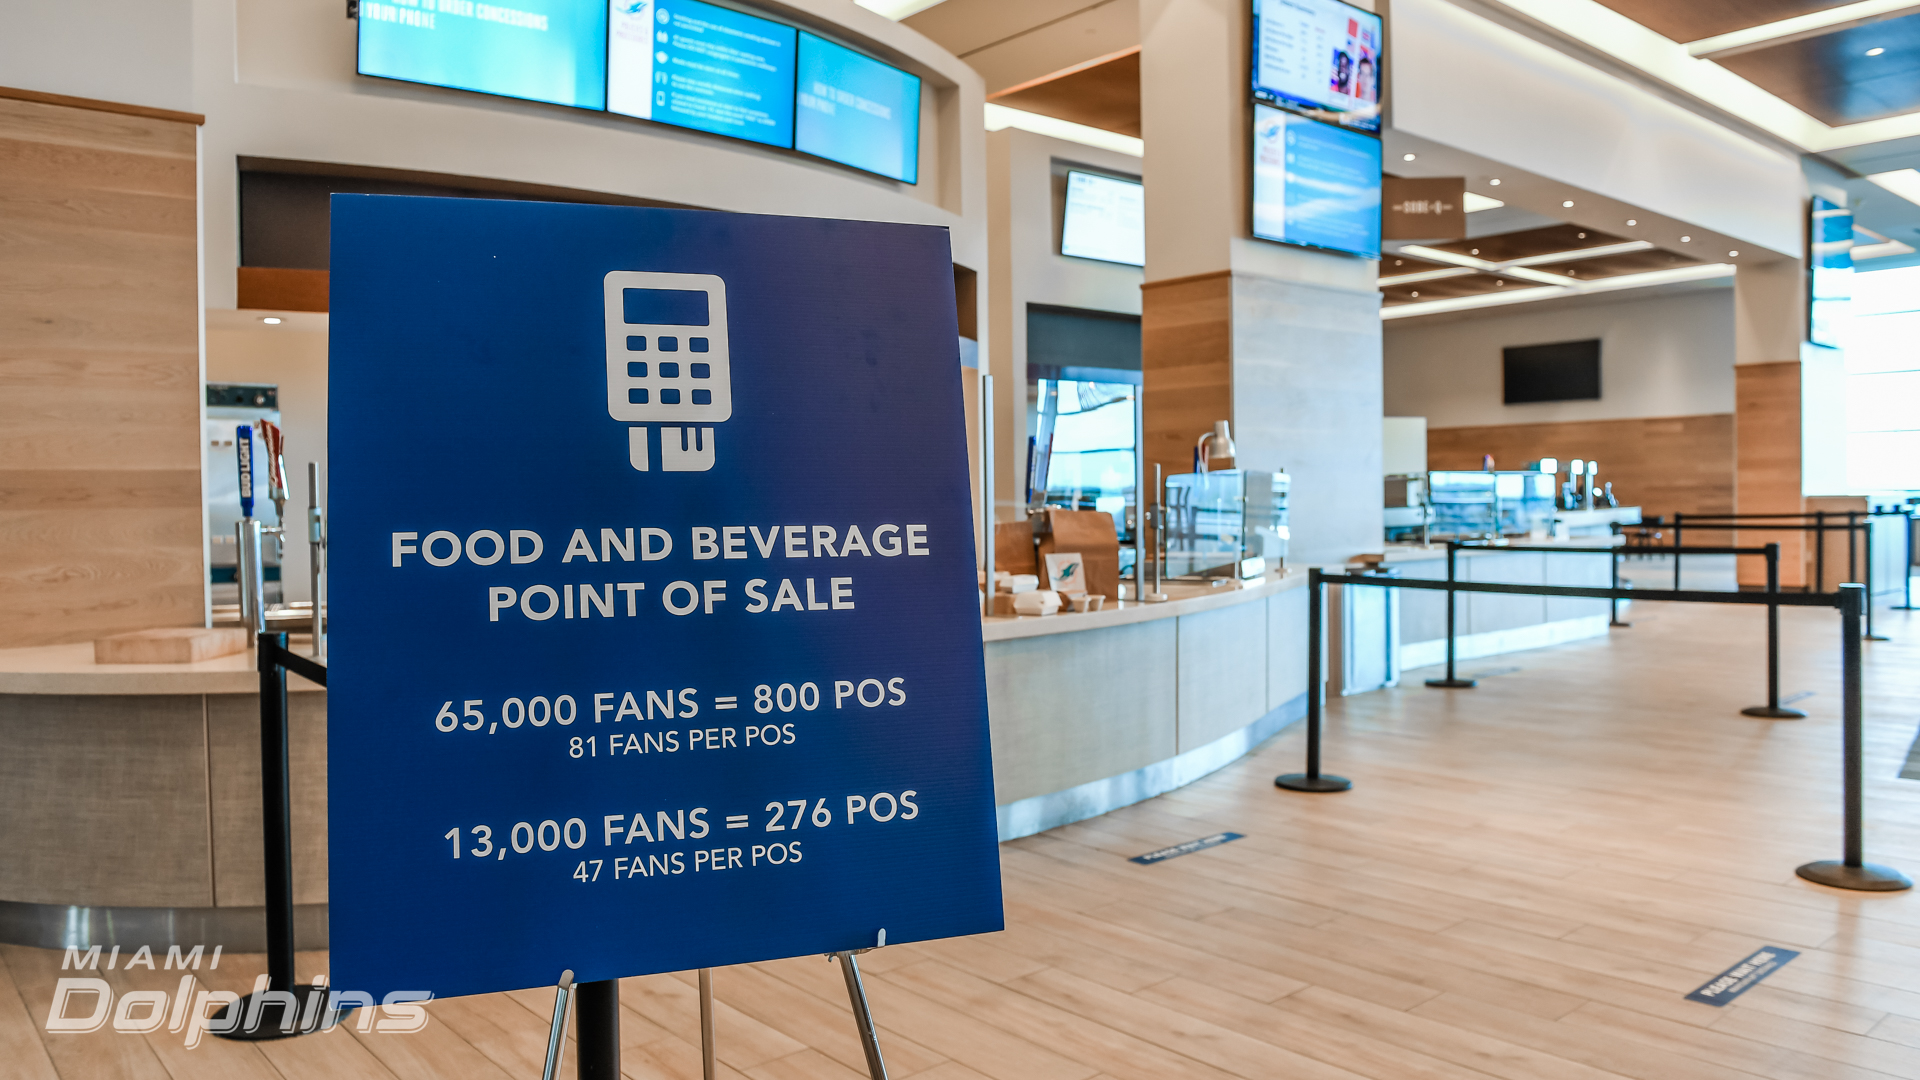 Food and Beverage Point of Sales at Hard Rock Stadium{ }(Miami Dolphins)